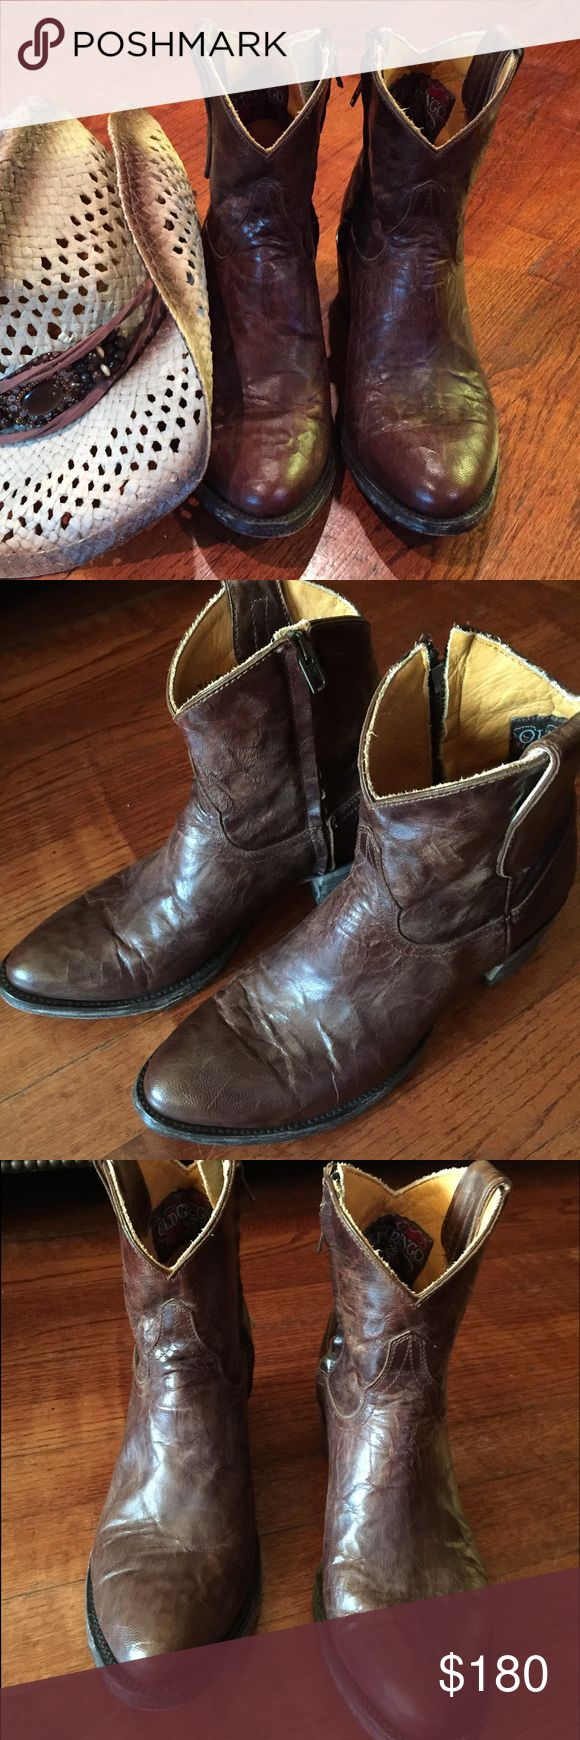 Old Gringos 7.5 Old Gringos Distressed Short Brown Boots with side zippers for easy fit Old Gringo Shoes Ankle Boots & Booties